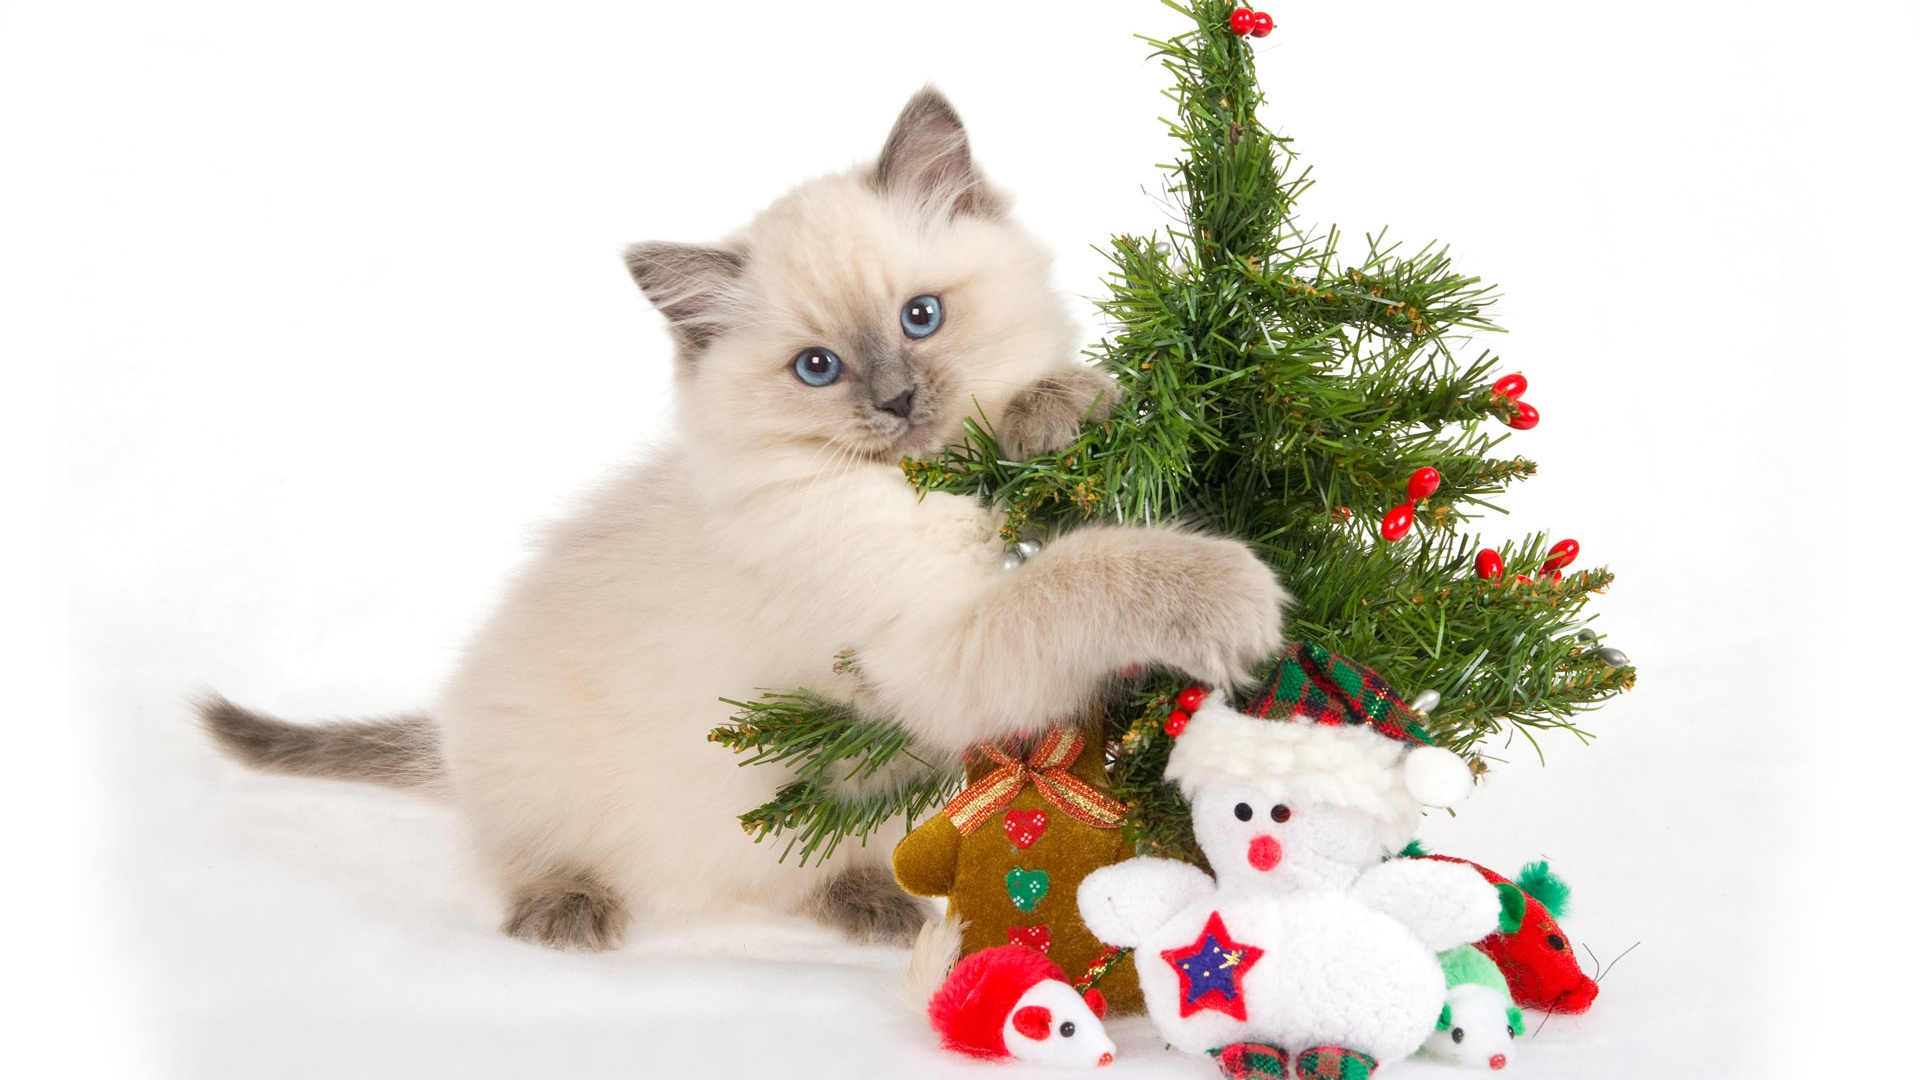 1920x1080 Cat with Christmas tree desktop PC and Mac wallpaper 1920x1080